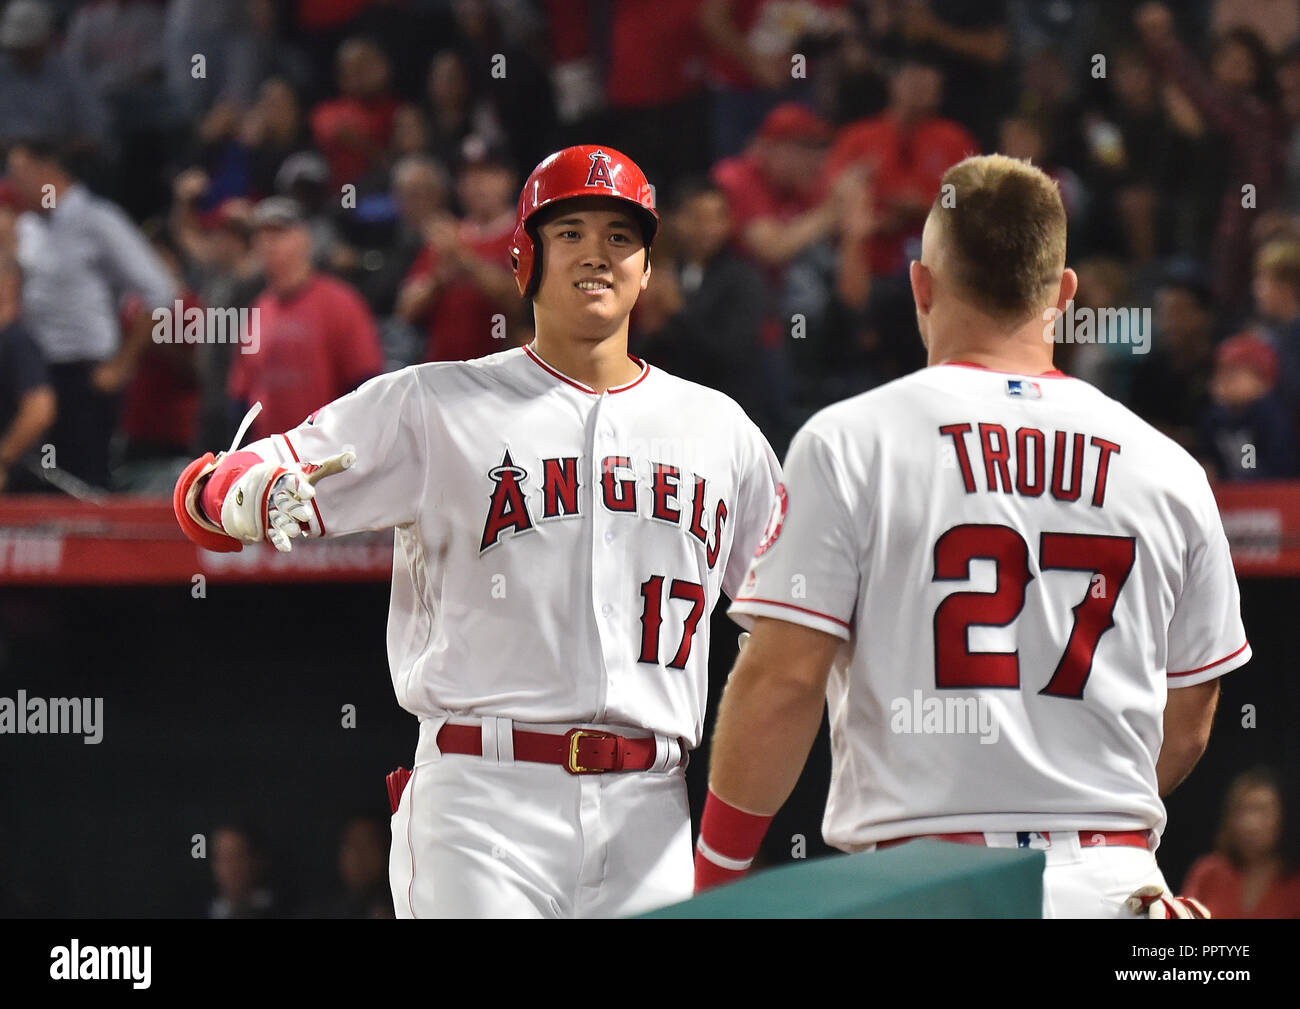 441cc7a3b Los Angeles Angels designated hitter Shohei Ohtani is greeted by teammate Mike  Trout as he returns to the dugout after hitting a solo home run in the  eighth ...